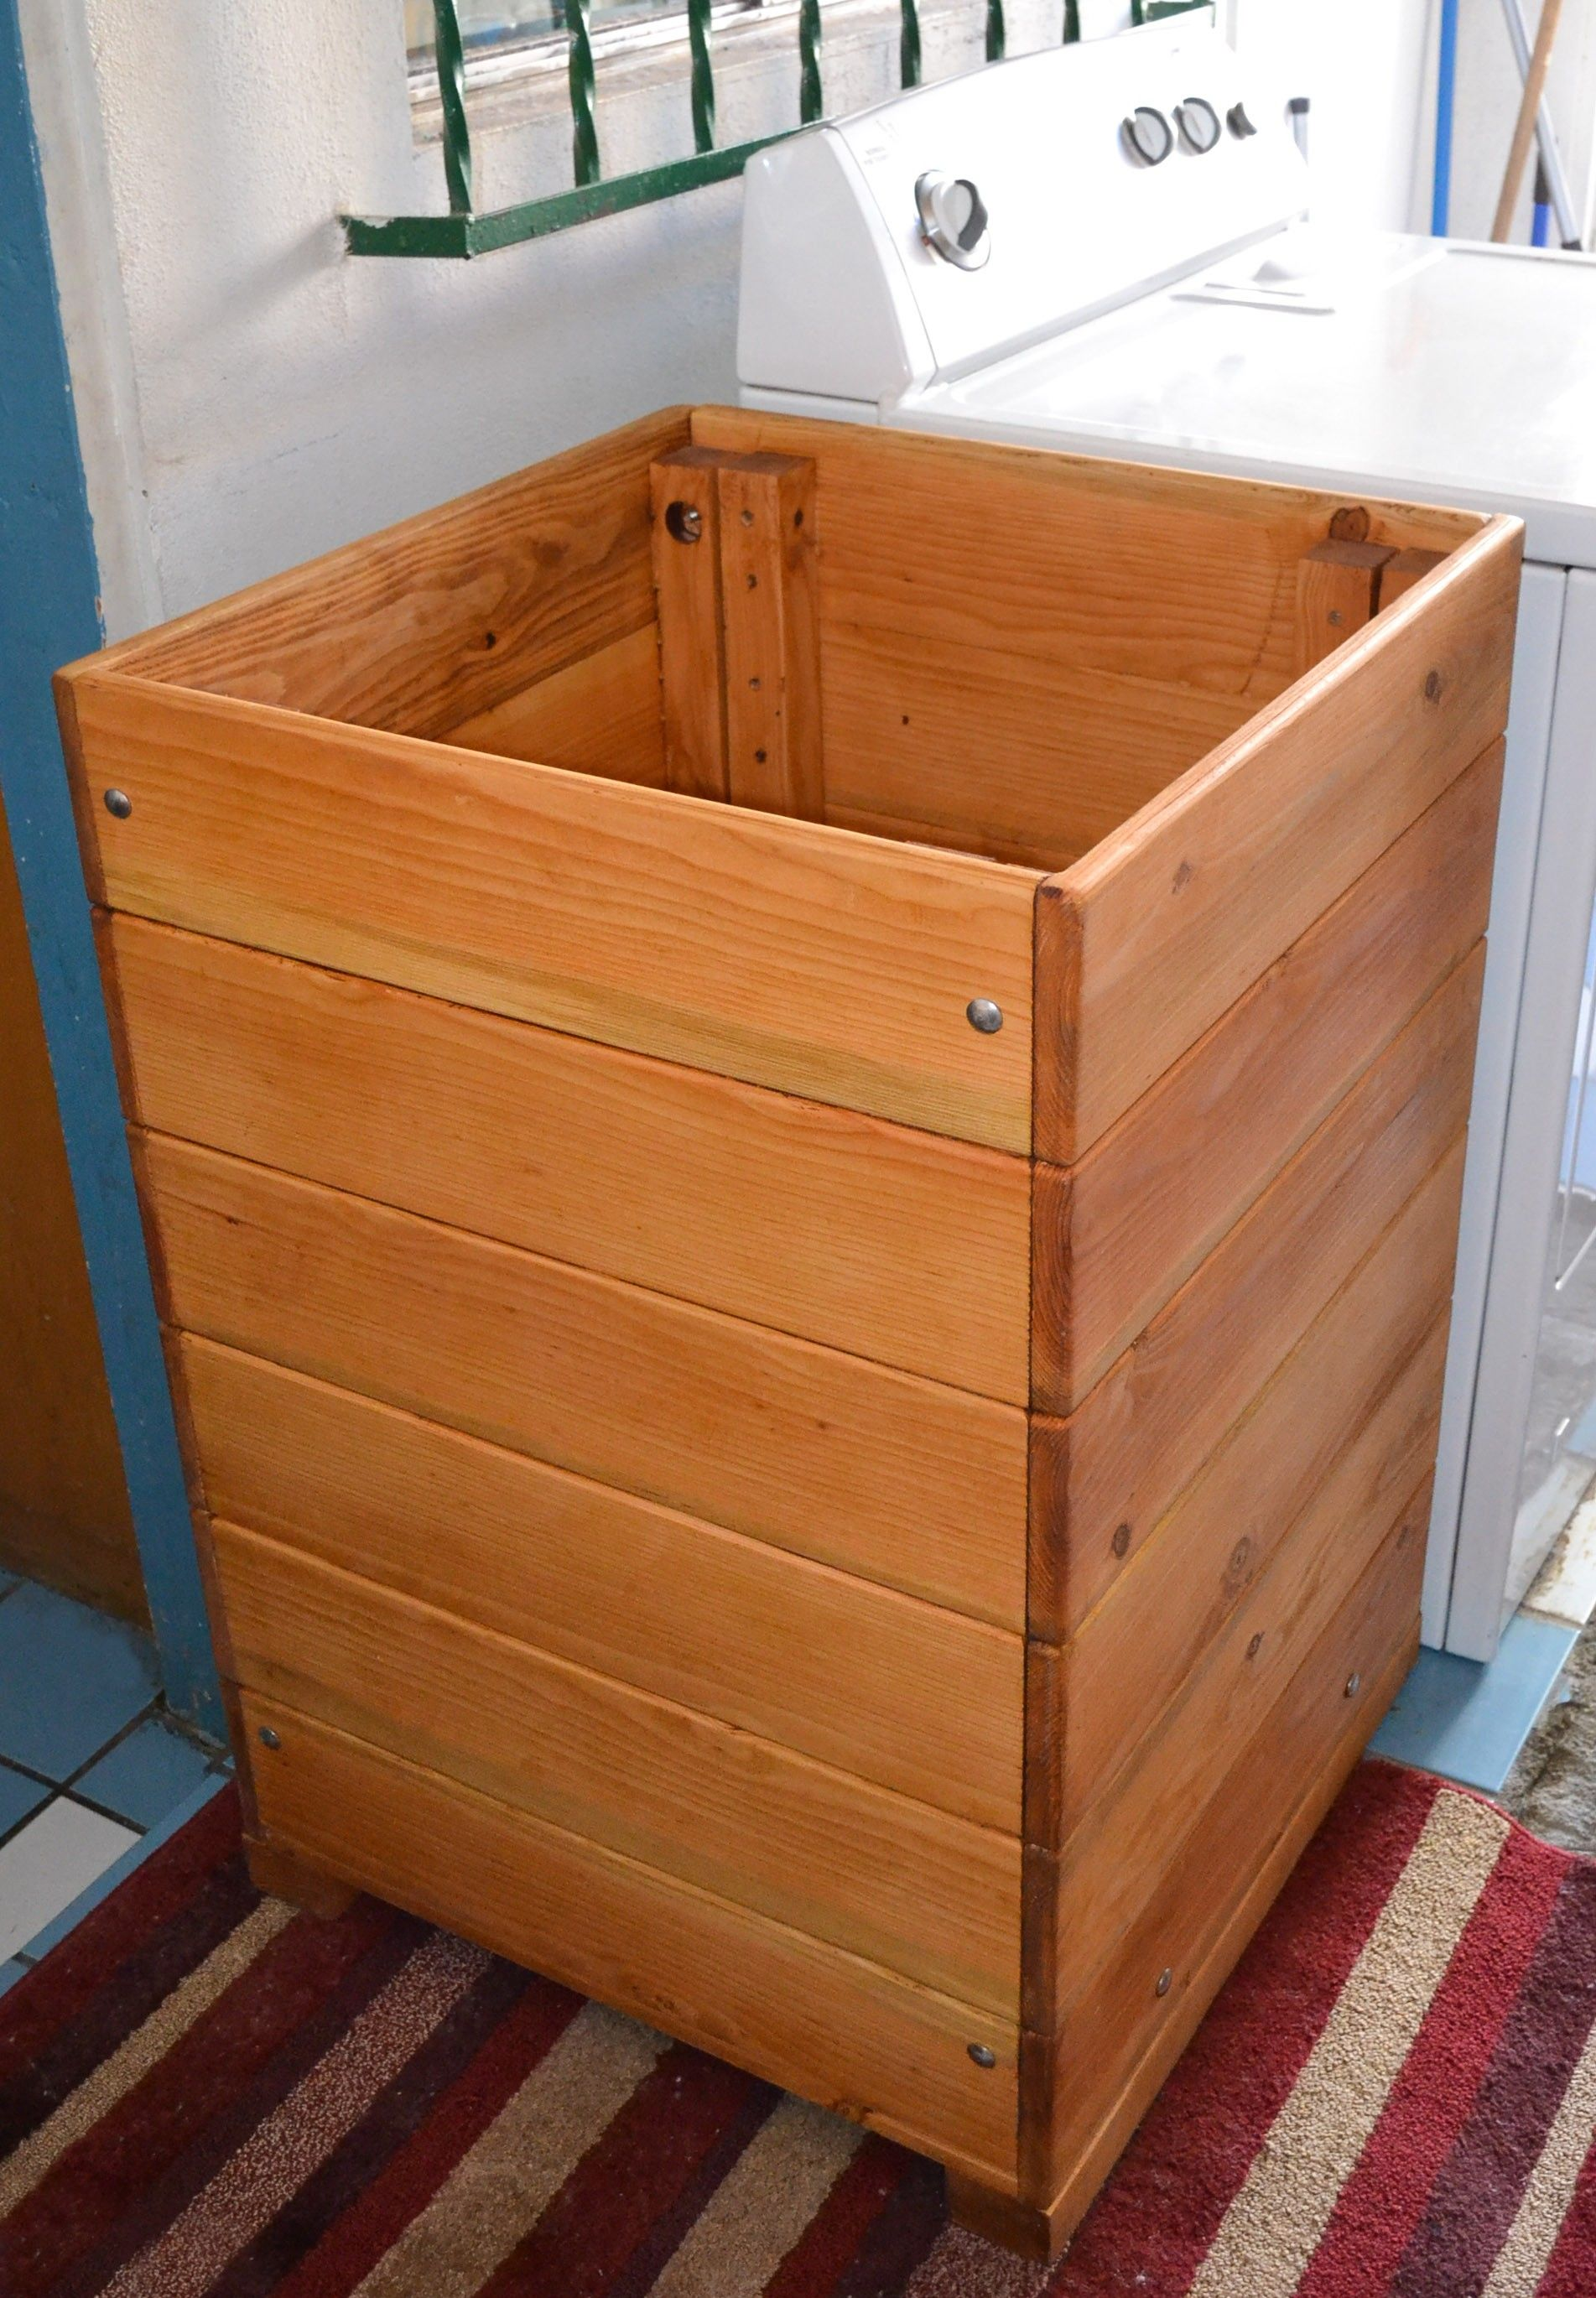 Uncategorized Nice Laundry Baskets i actually have an old wood grain bin like this and was wondering nice laundry hamper with simple canadian baseball handcarved wooden design hampers for best laundr